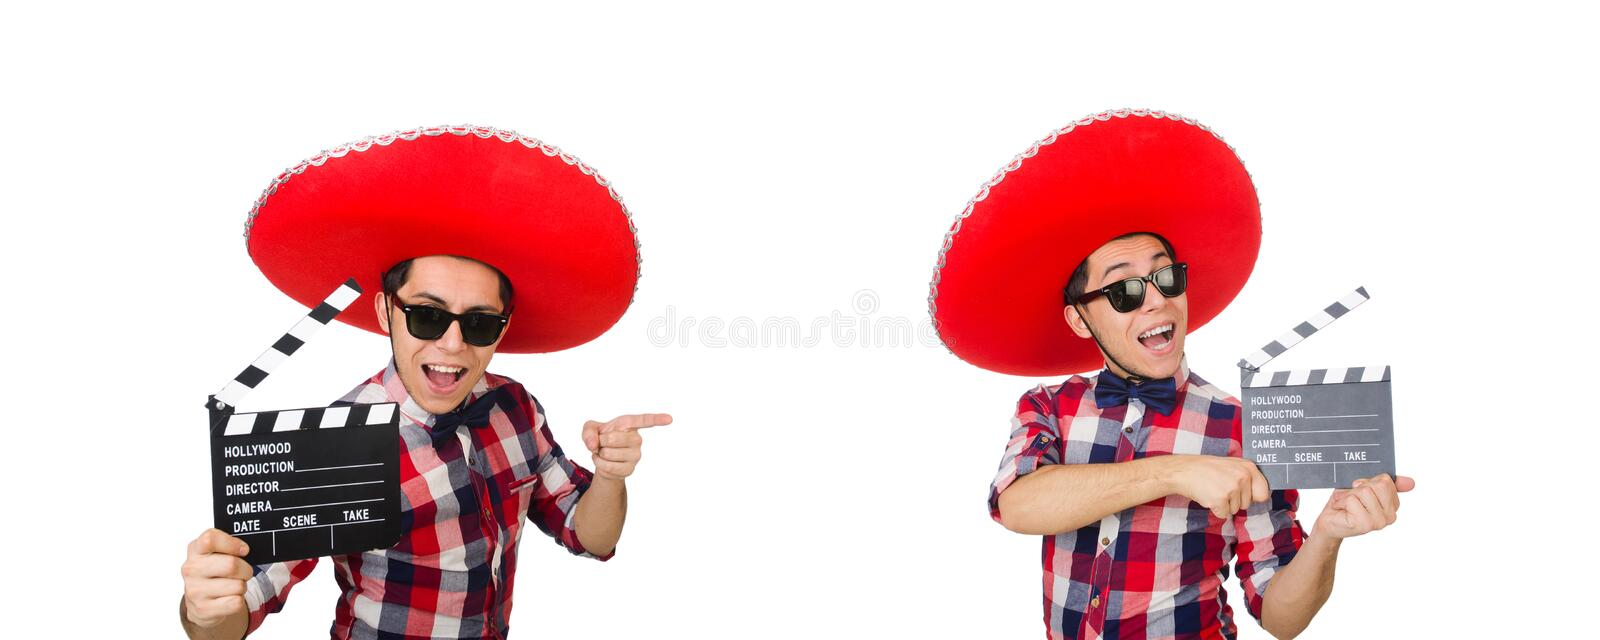 Funny mexican with sombrero in funny concept royalty free stock photos